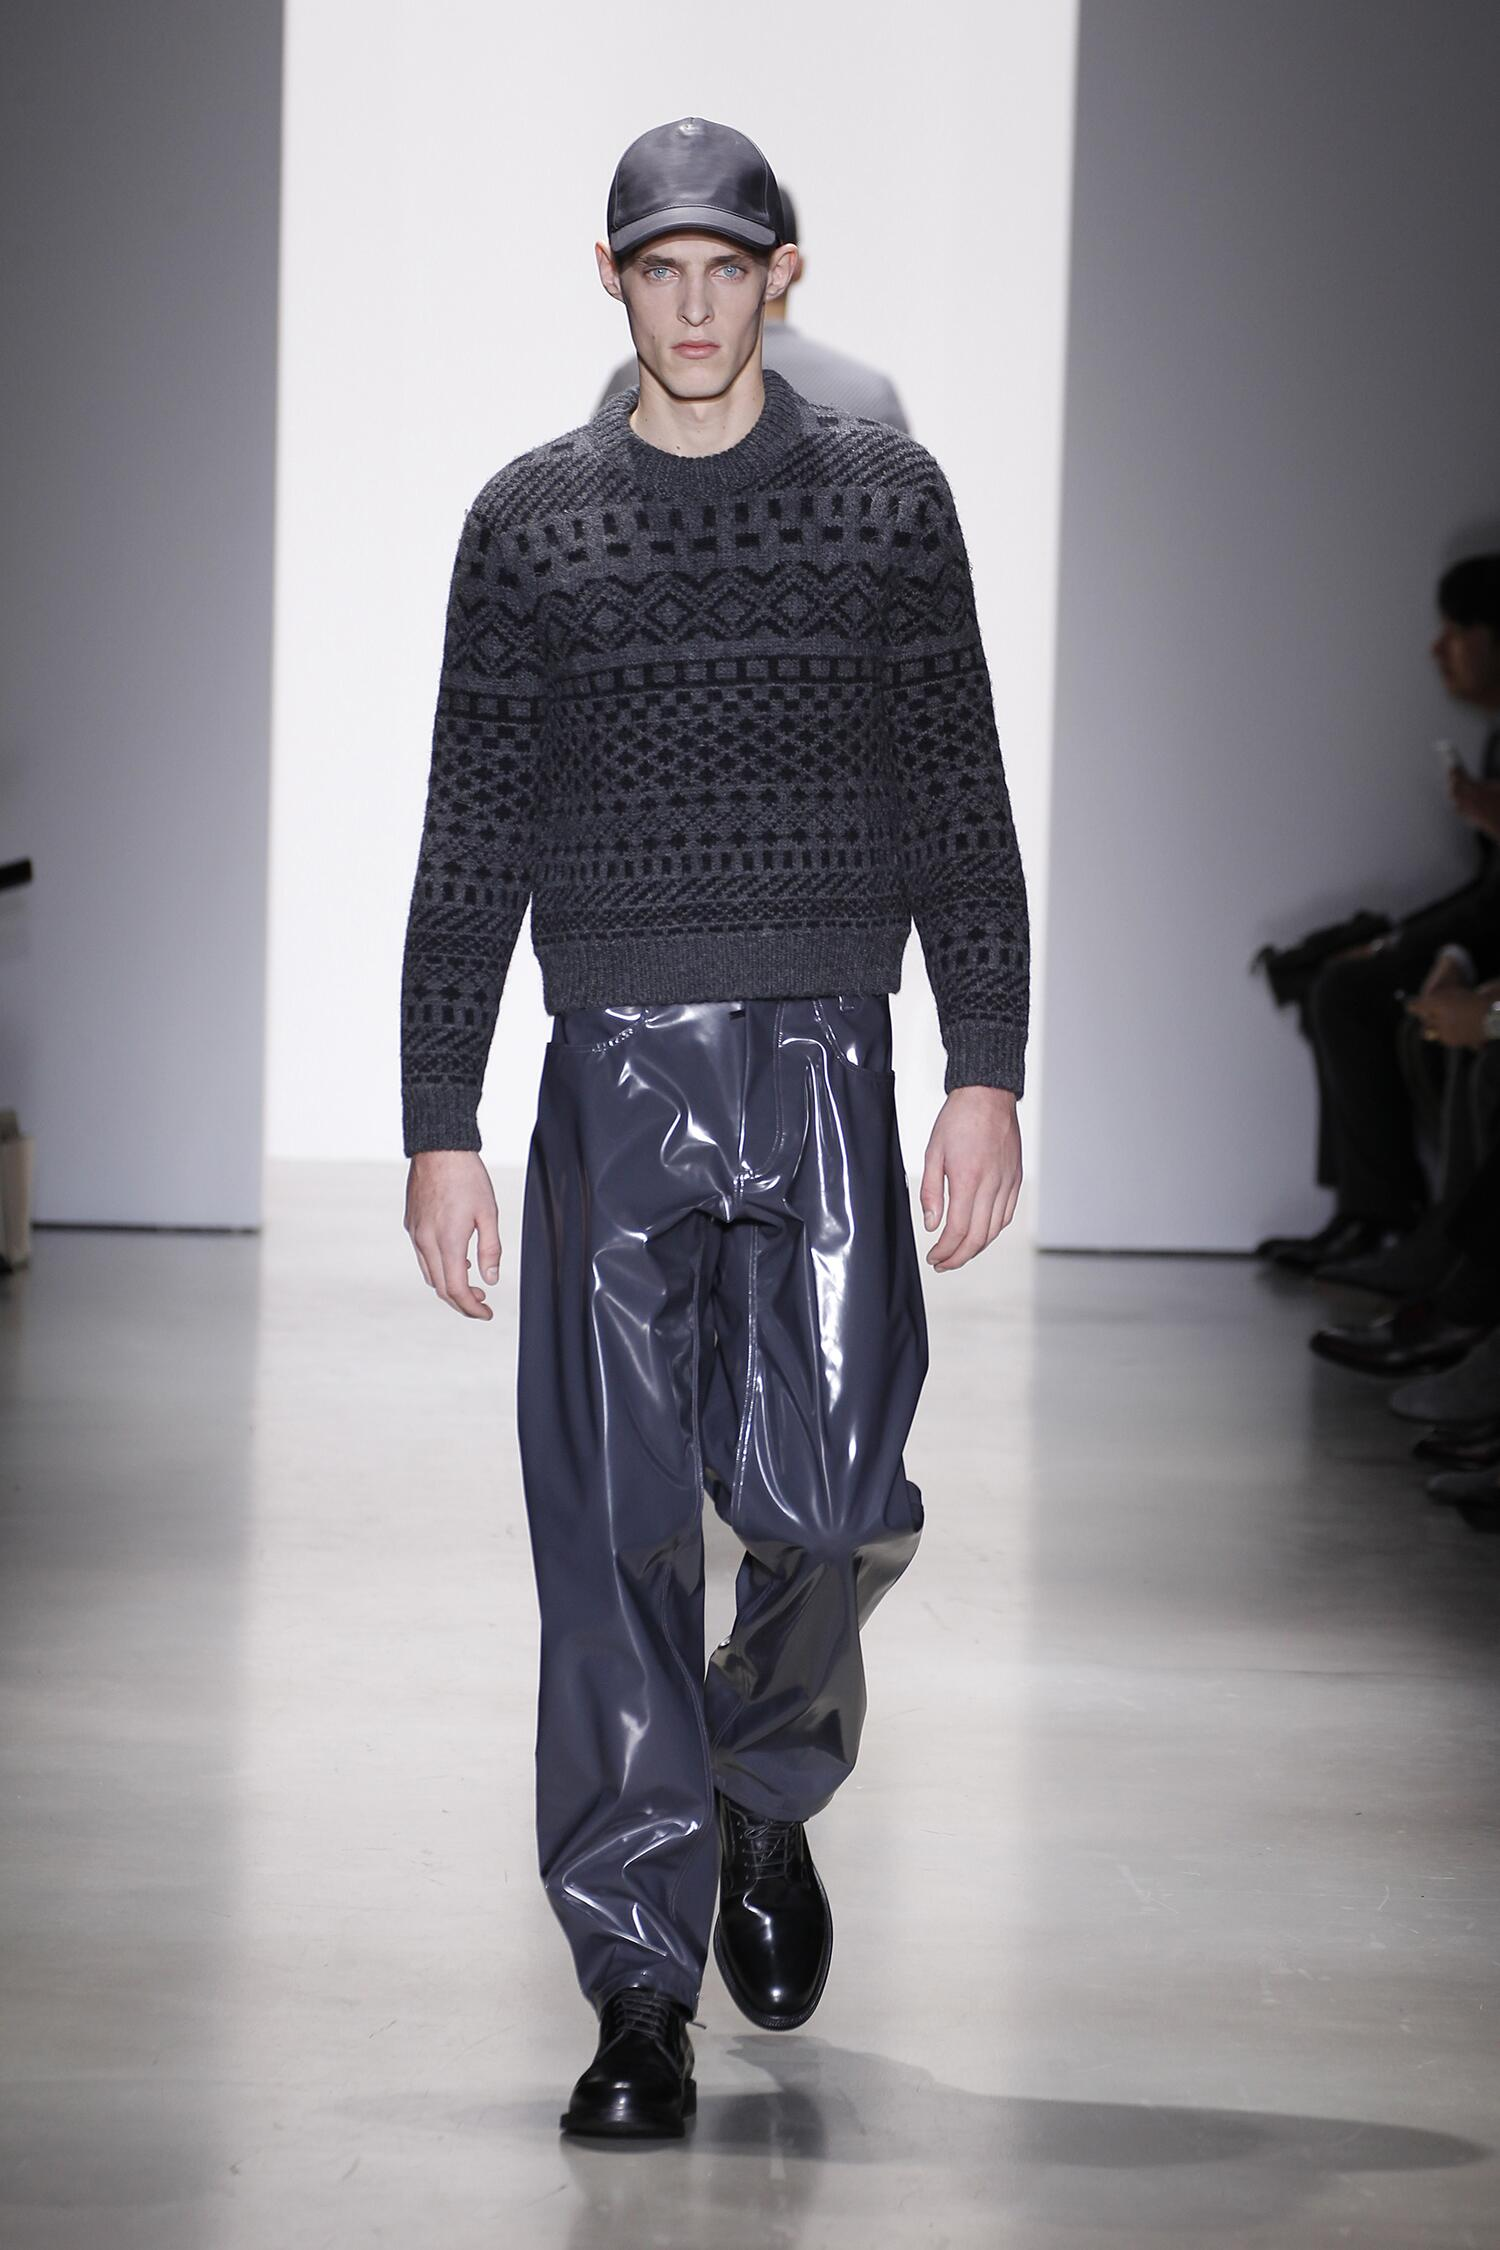 Catwalk Calvin Klein Collection Fashion Show Winter 2015